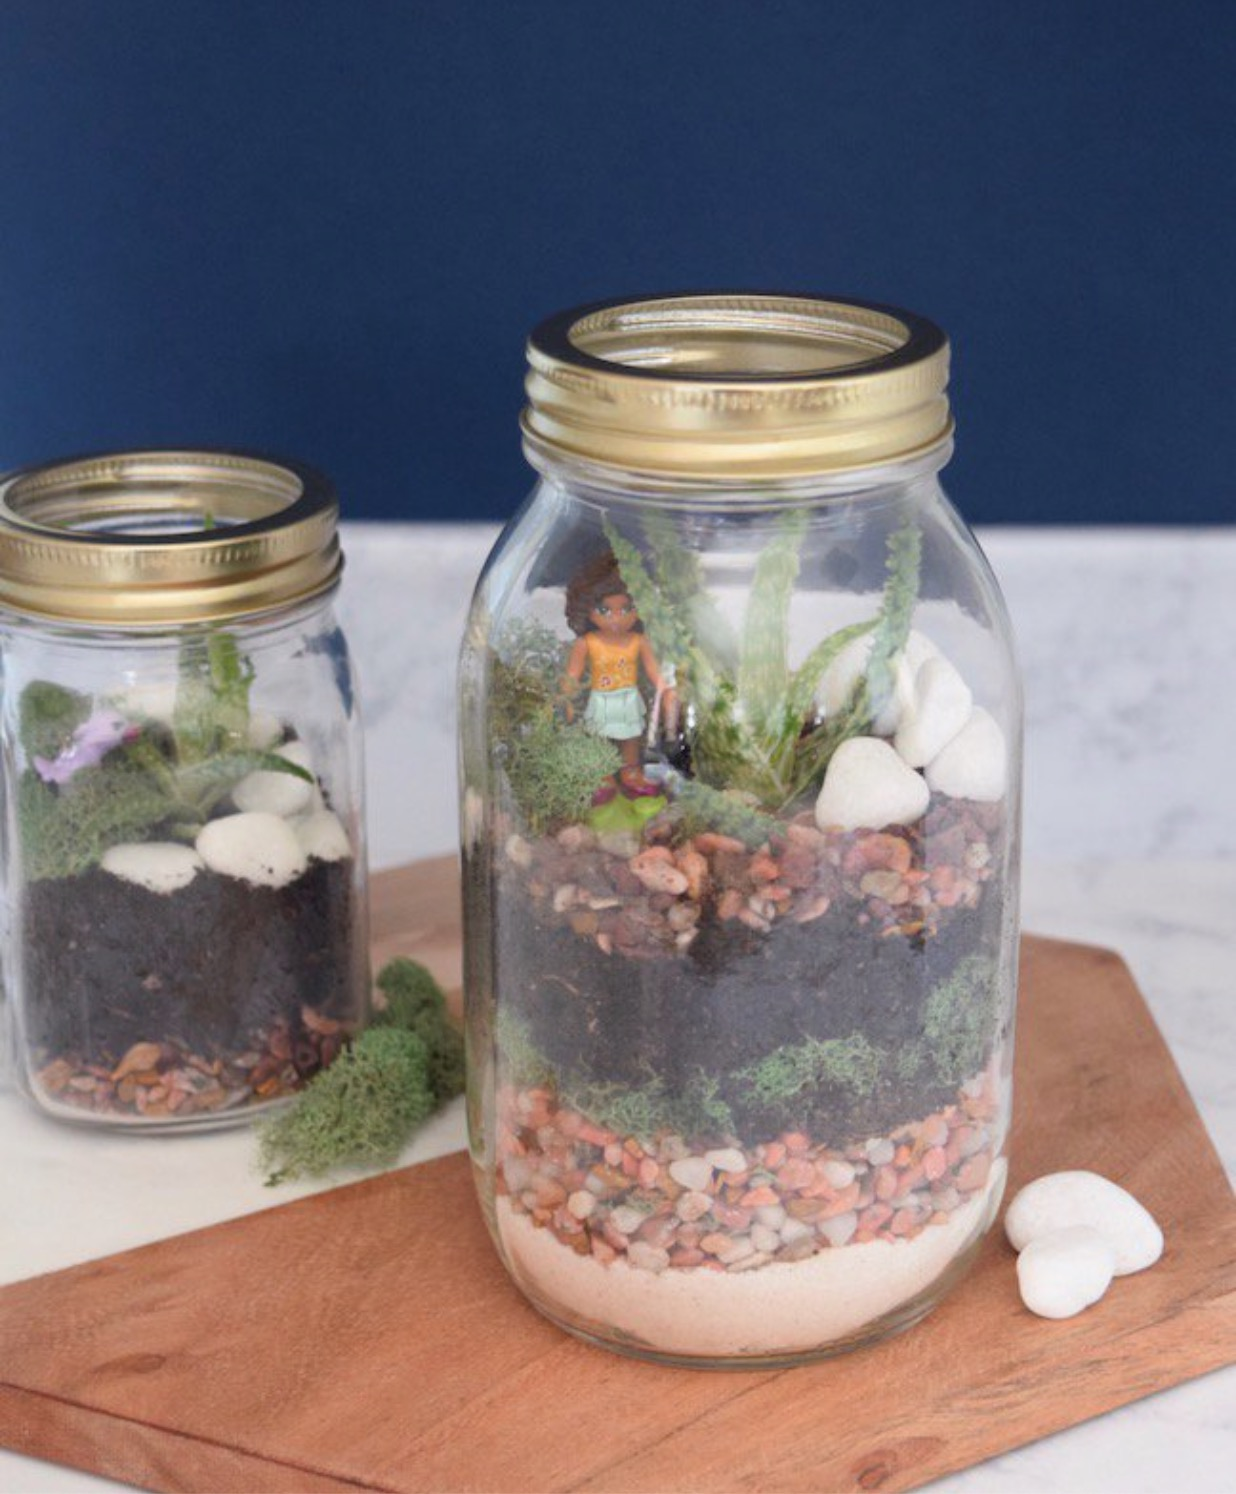 This DIY Mason Jar Terrarium is So Easy to Make. - EXCERPT: It still feels a lot like winter in Minnesota. It's 20 degrees, and my feet are perpetually freezing. While I pop my vitamin D tablets and daydream about lazy days on the lake this summer, I'm getting desperate to see some actual greenery… READ THE POST